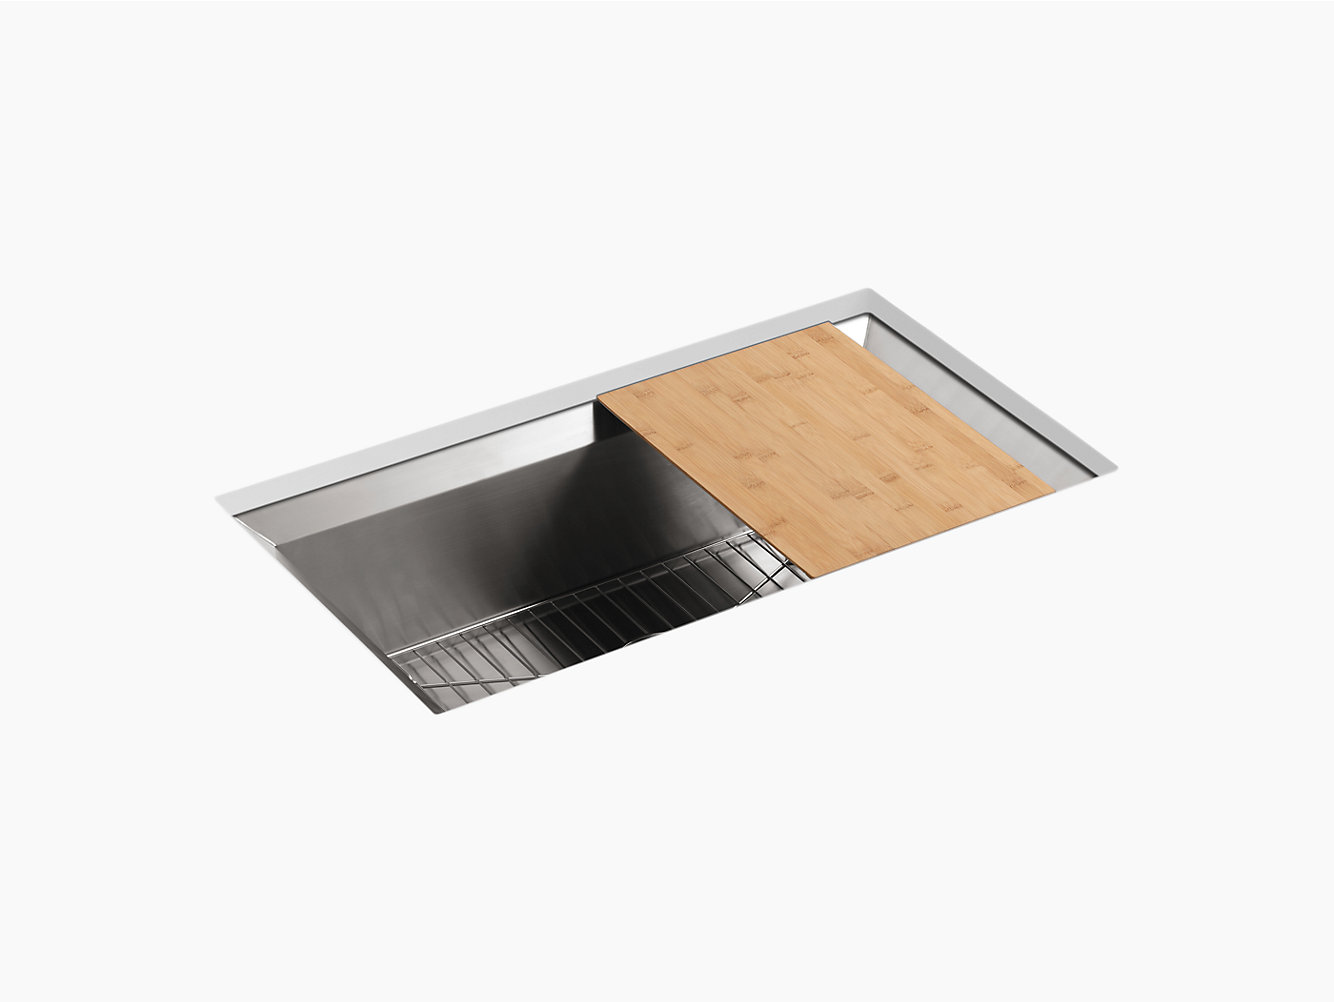 Kohler 3158 Poise 33 X 18 9 3 4 Under Mount Single Bowl Kitchen Sink With Cutting Board And Bottom Rack